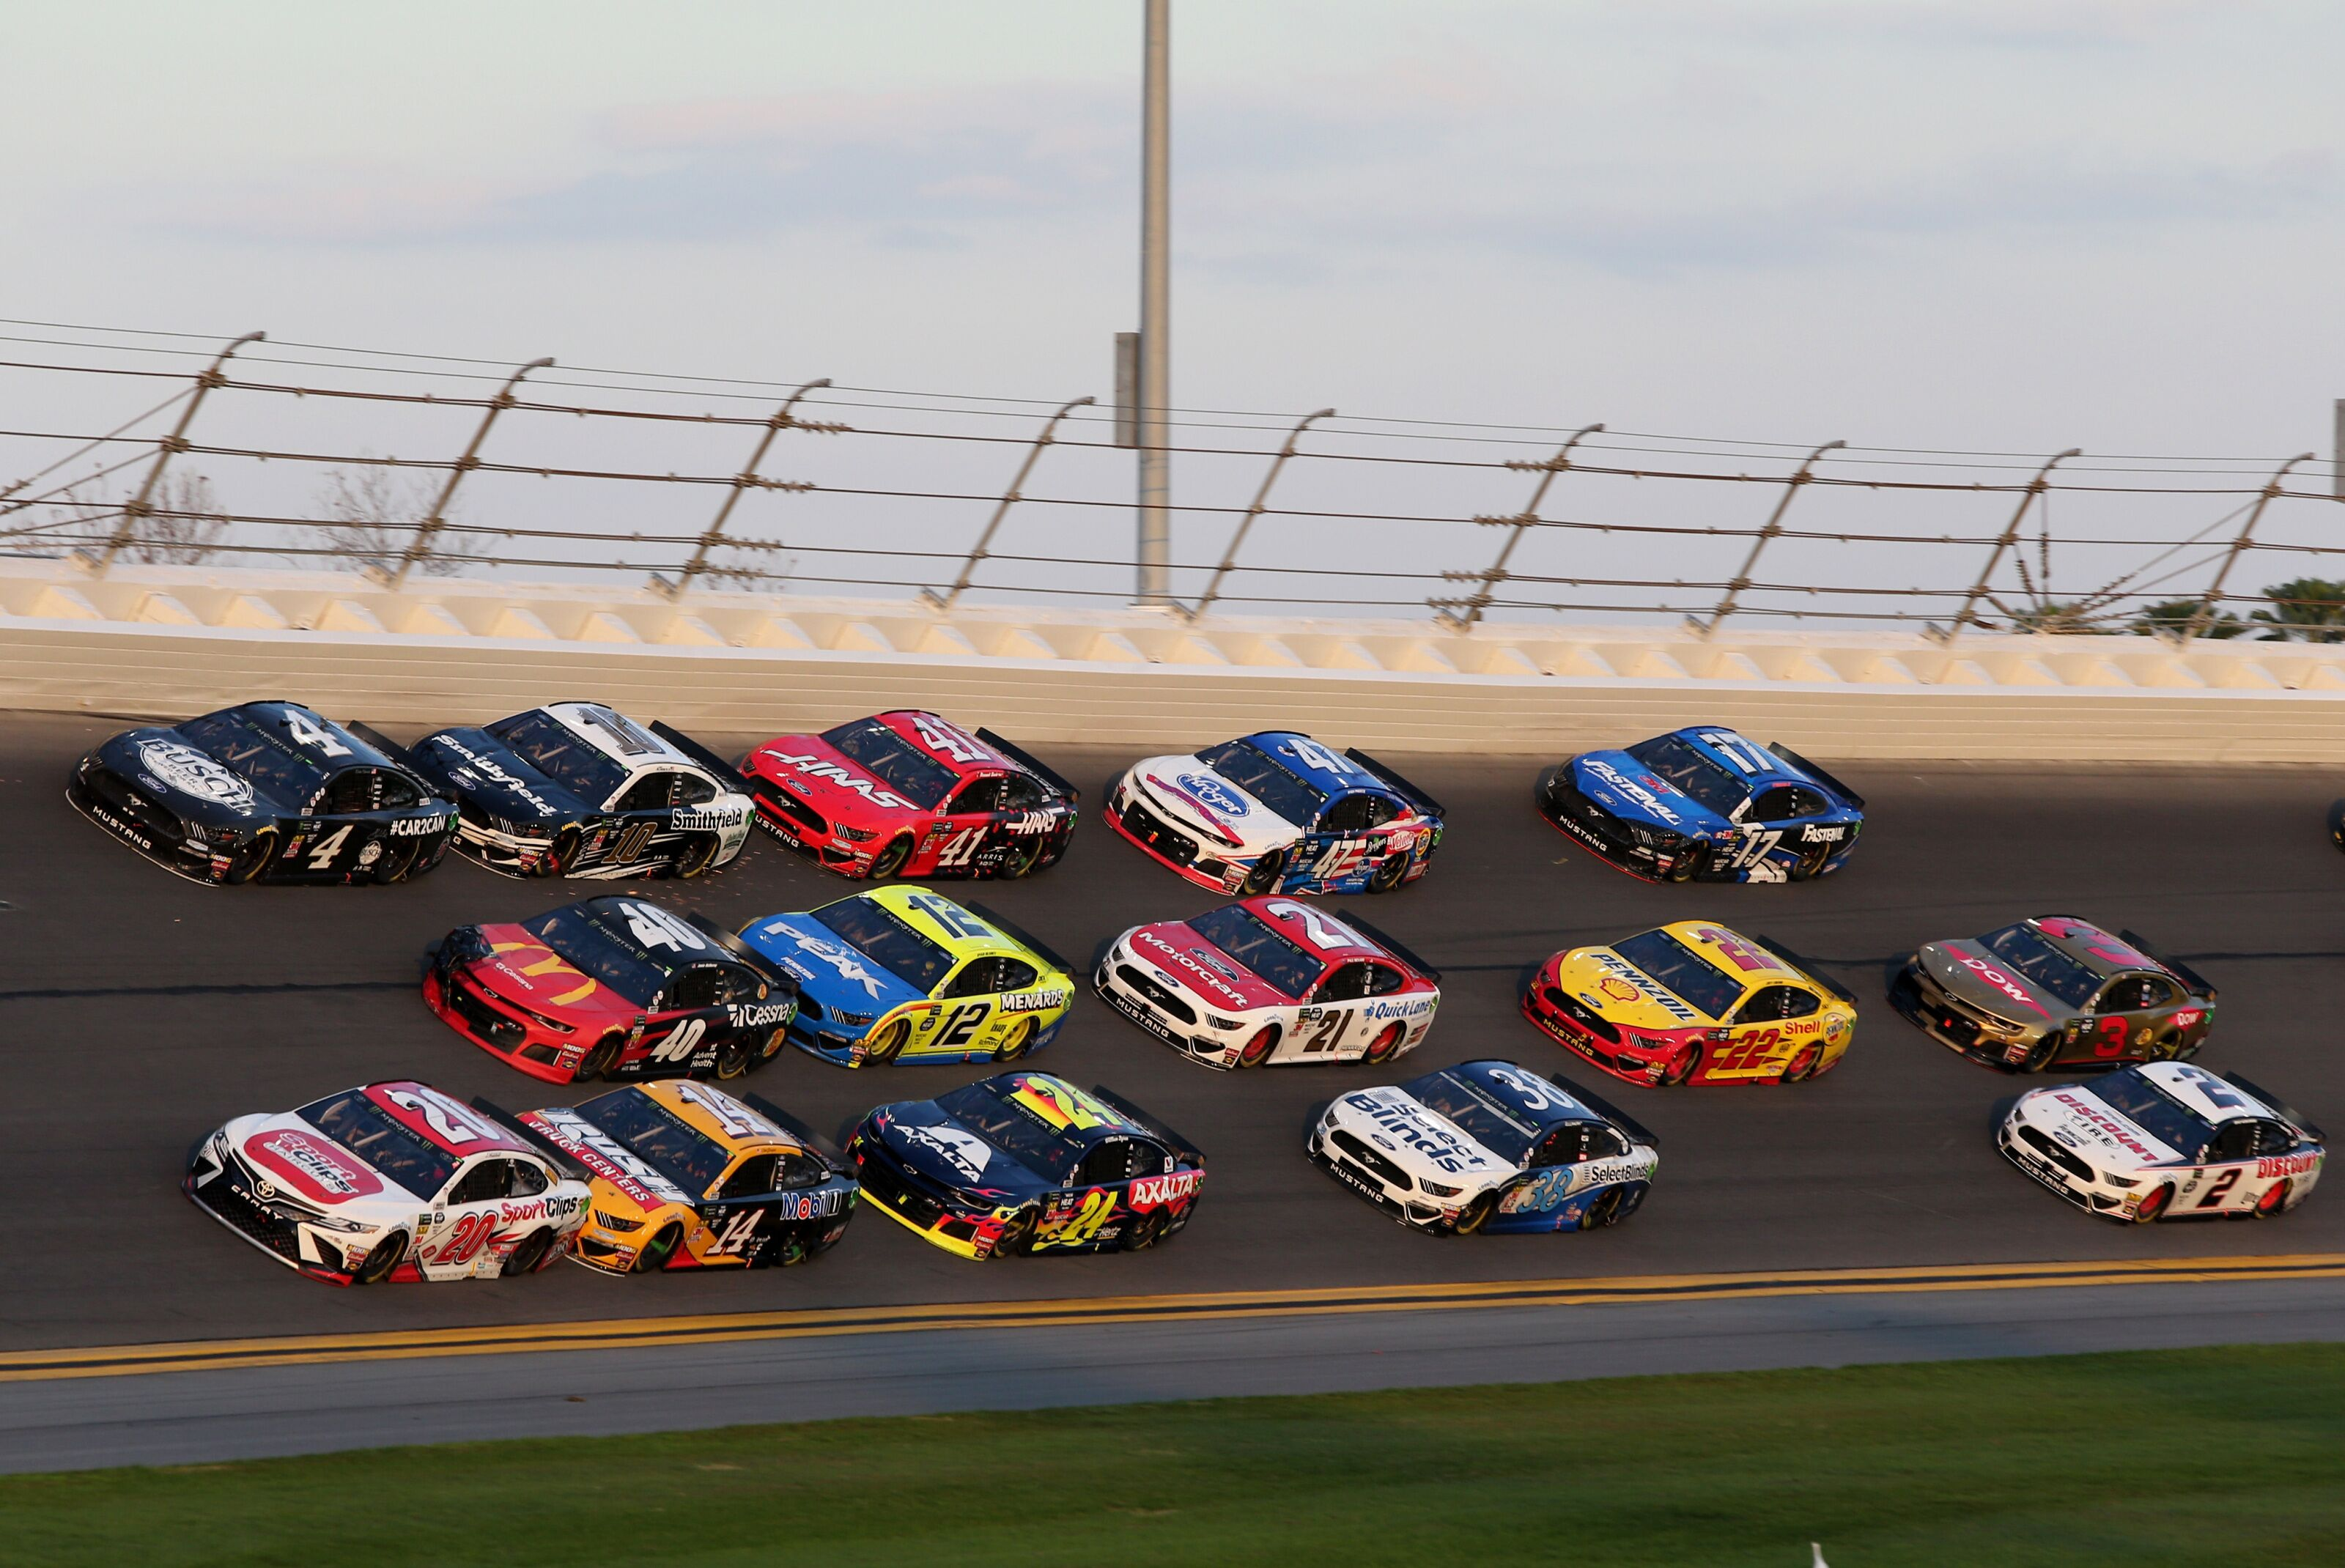 NASCAR Cup Series: 2020 schedule released, features many changes